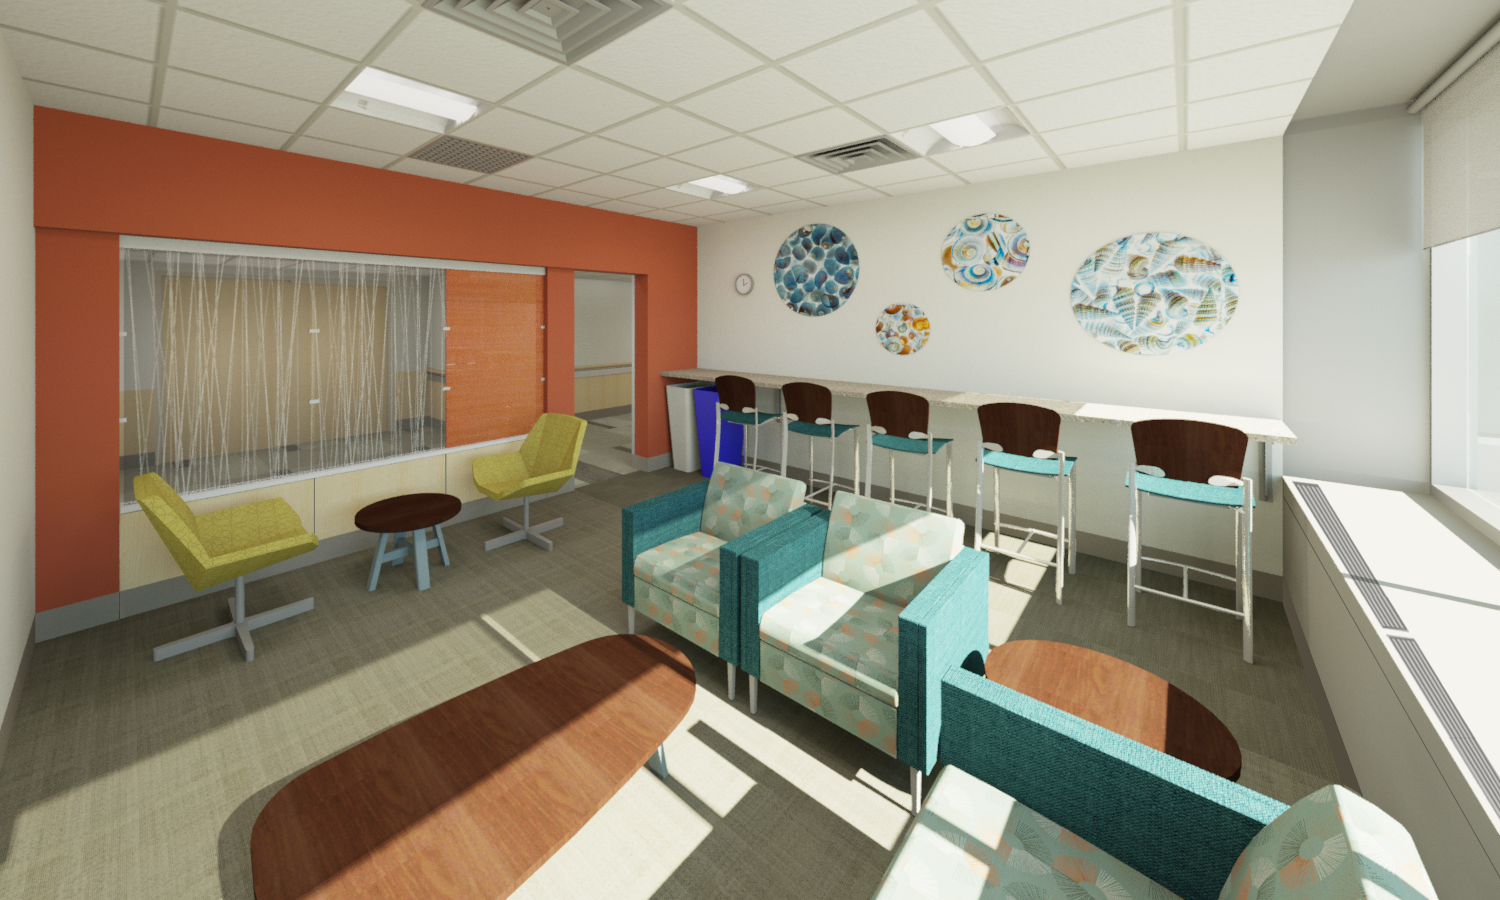 Rendering of new inpatient waiting room at UMass Memorial Medical Center, University Campus